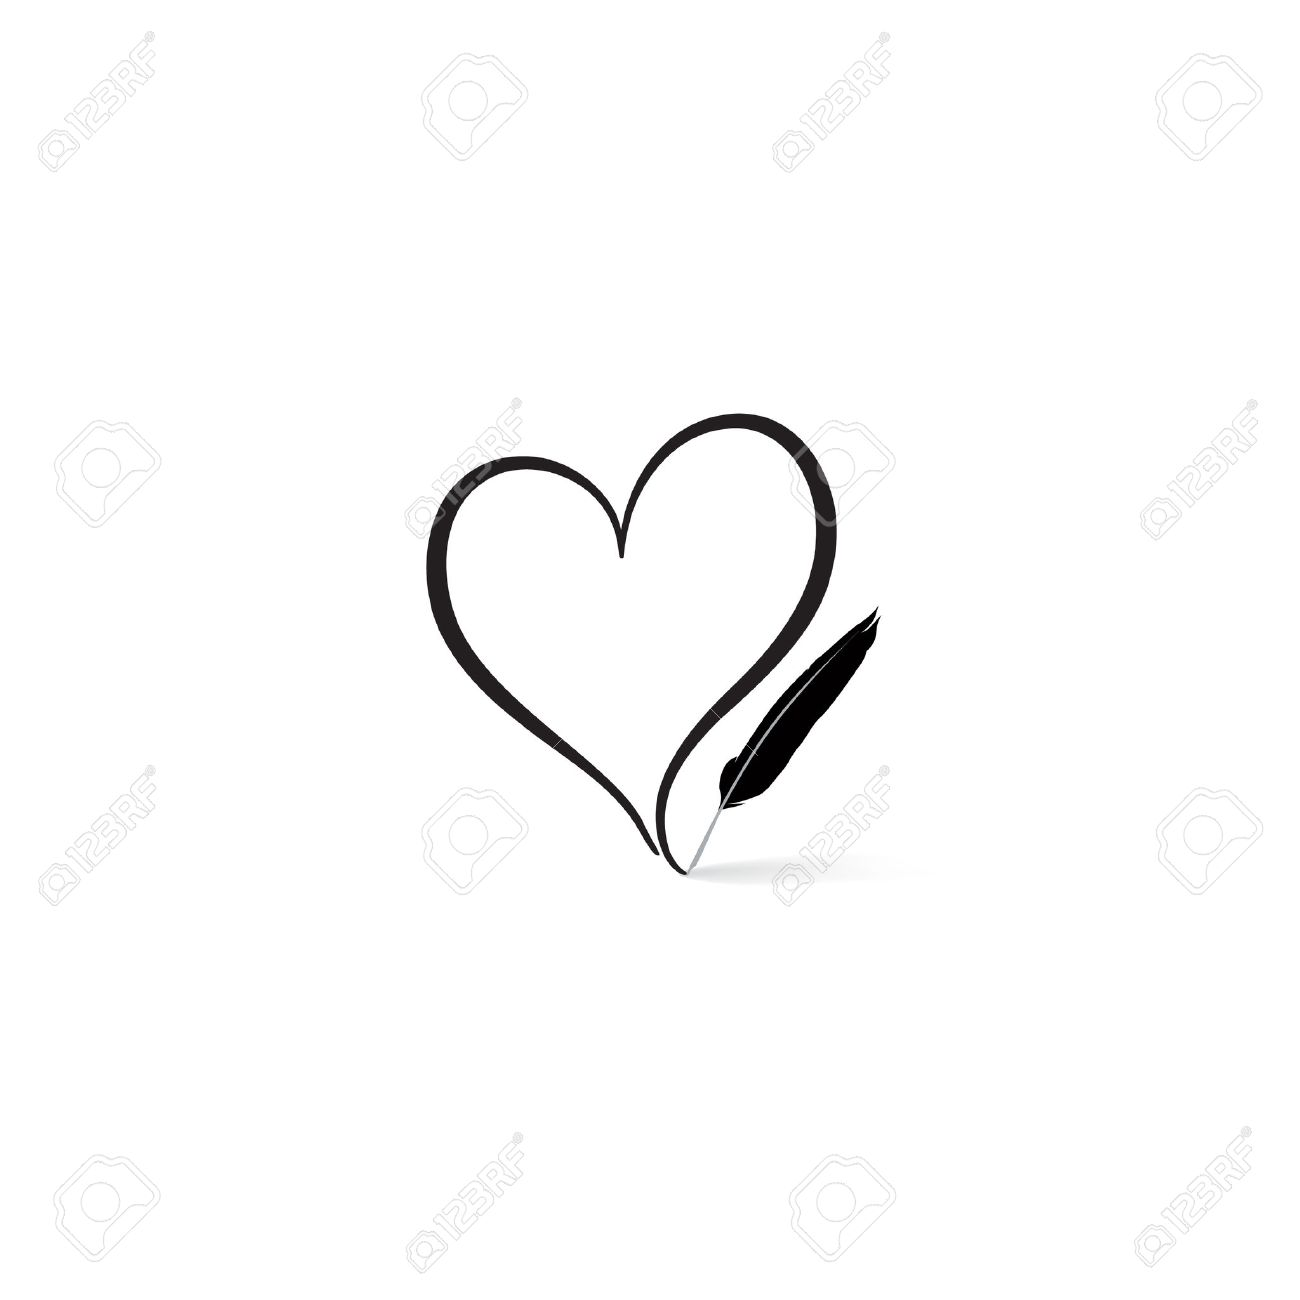 Love heart written by feather pen. St Valentine's day greeting card. Heart shape design for love symbols. - 69051928